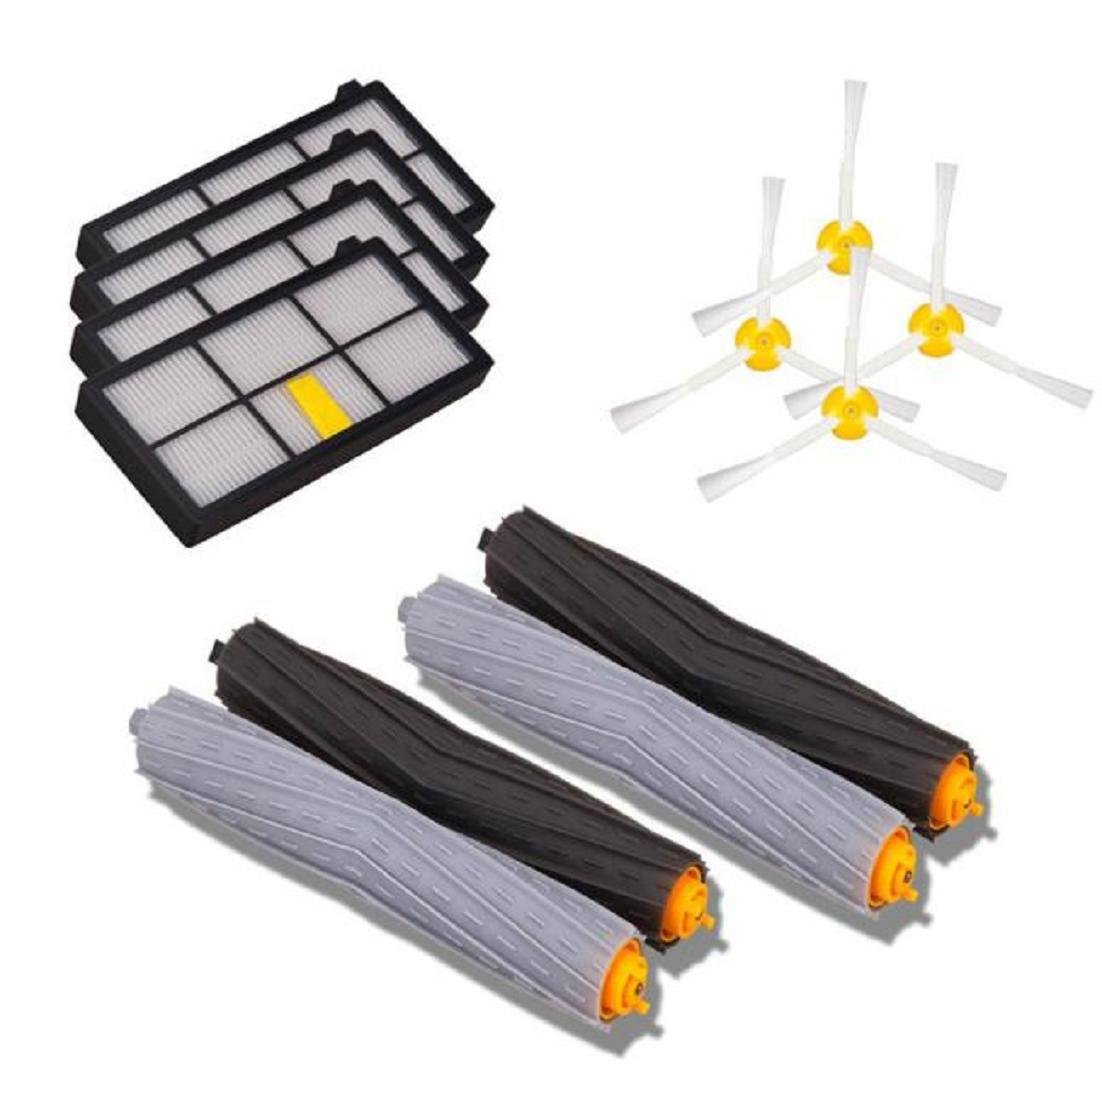 Sweeping Roboter Zubehö r, Xjp Vacuum Cleaning Robots Accessories Replacement Part Kit for iRobot Roomba 870 880 980 Series